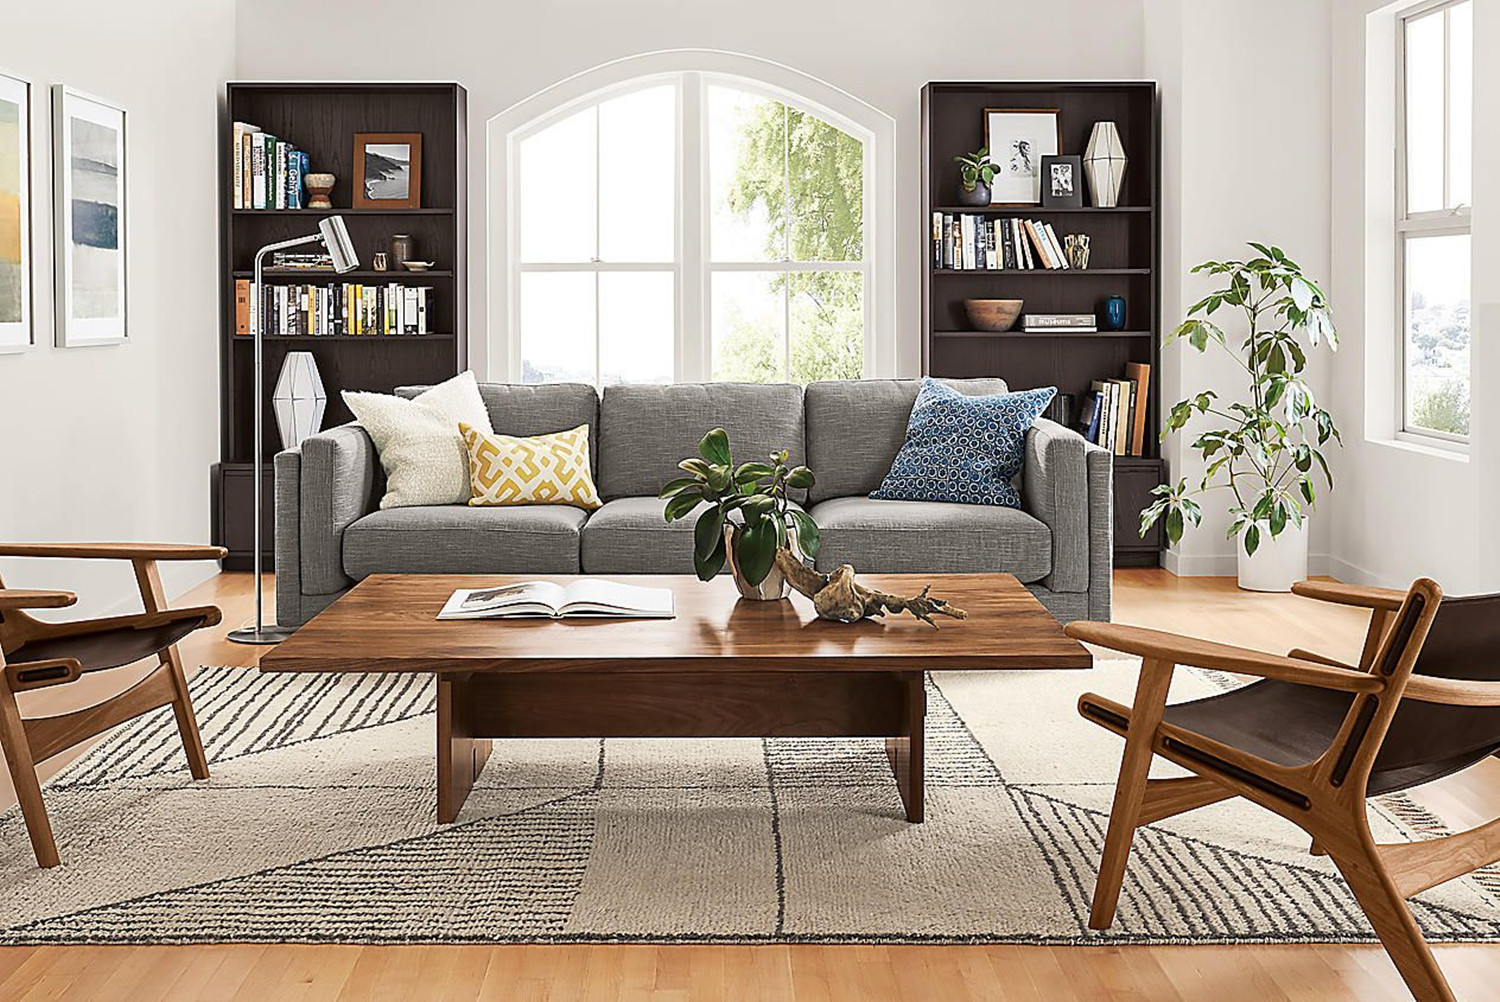 Decor Trends That Will be Huge in 2020